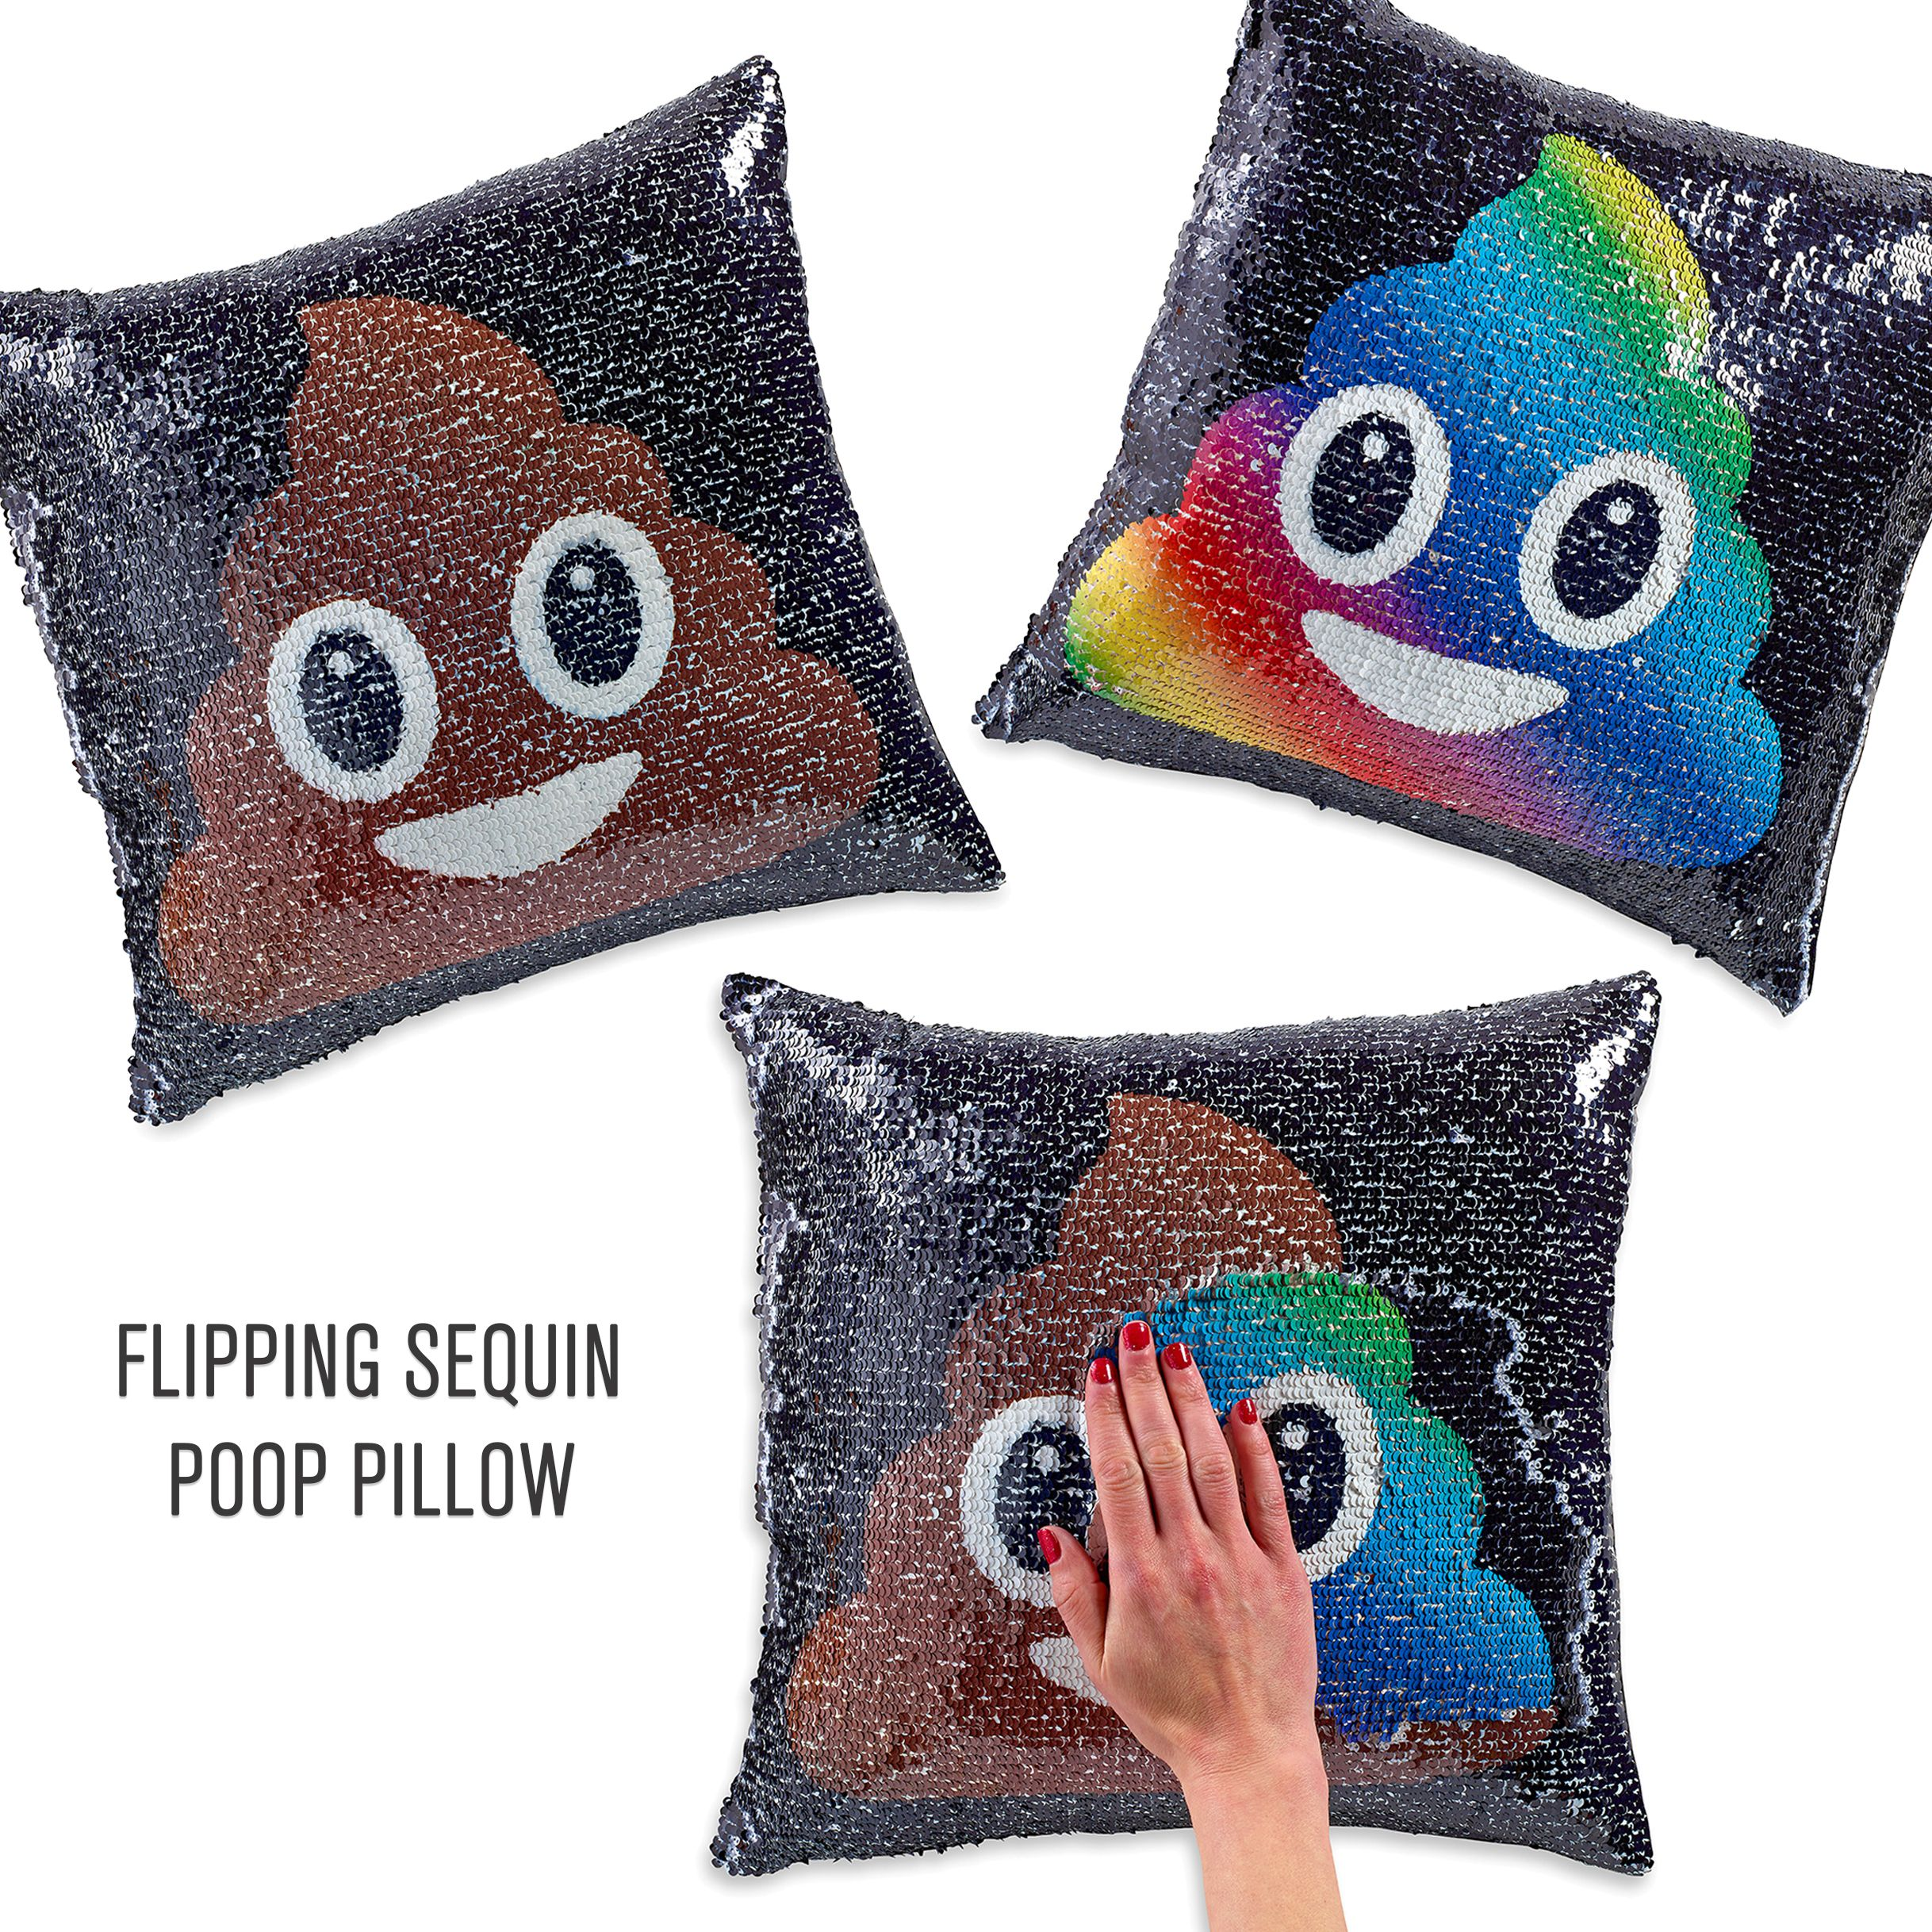 new flipping sequin pillows with emoji faces flip the sequins back and forth to change the face. Black Bedroom Furniture Sets. Home Design Ideas